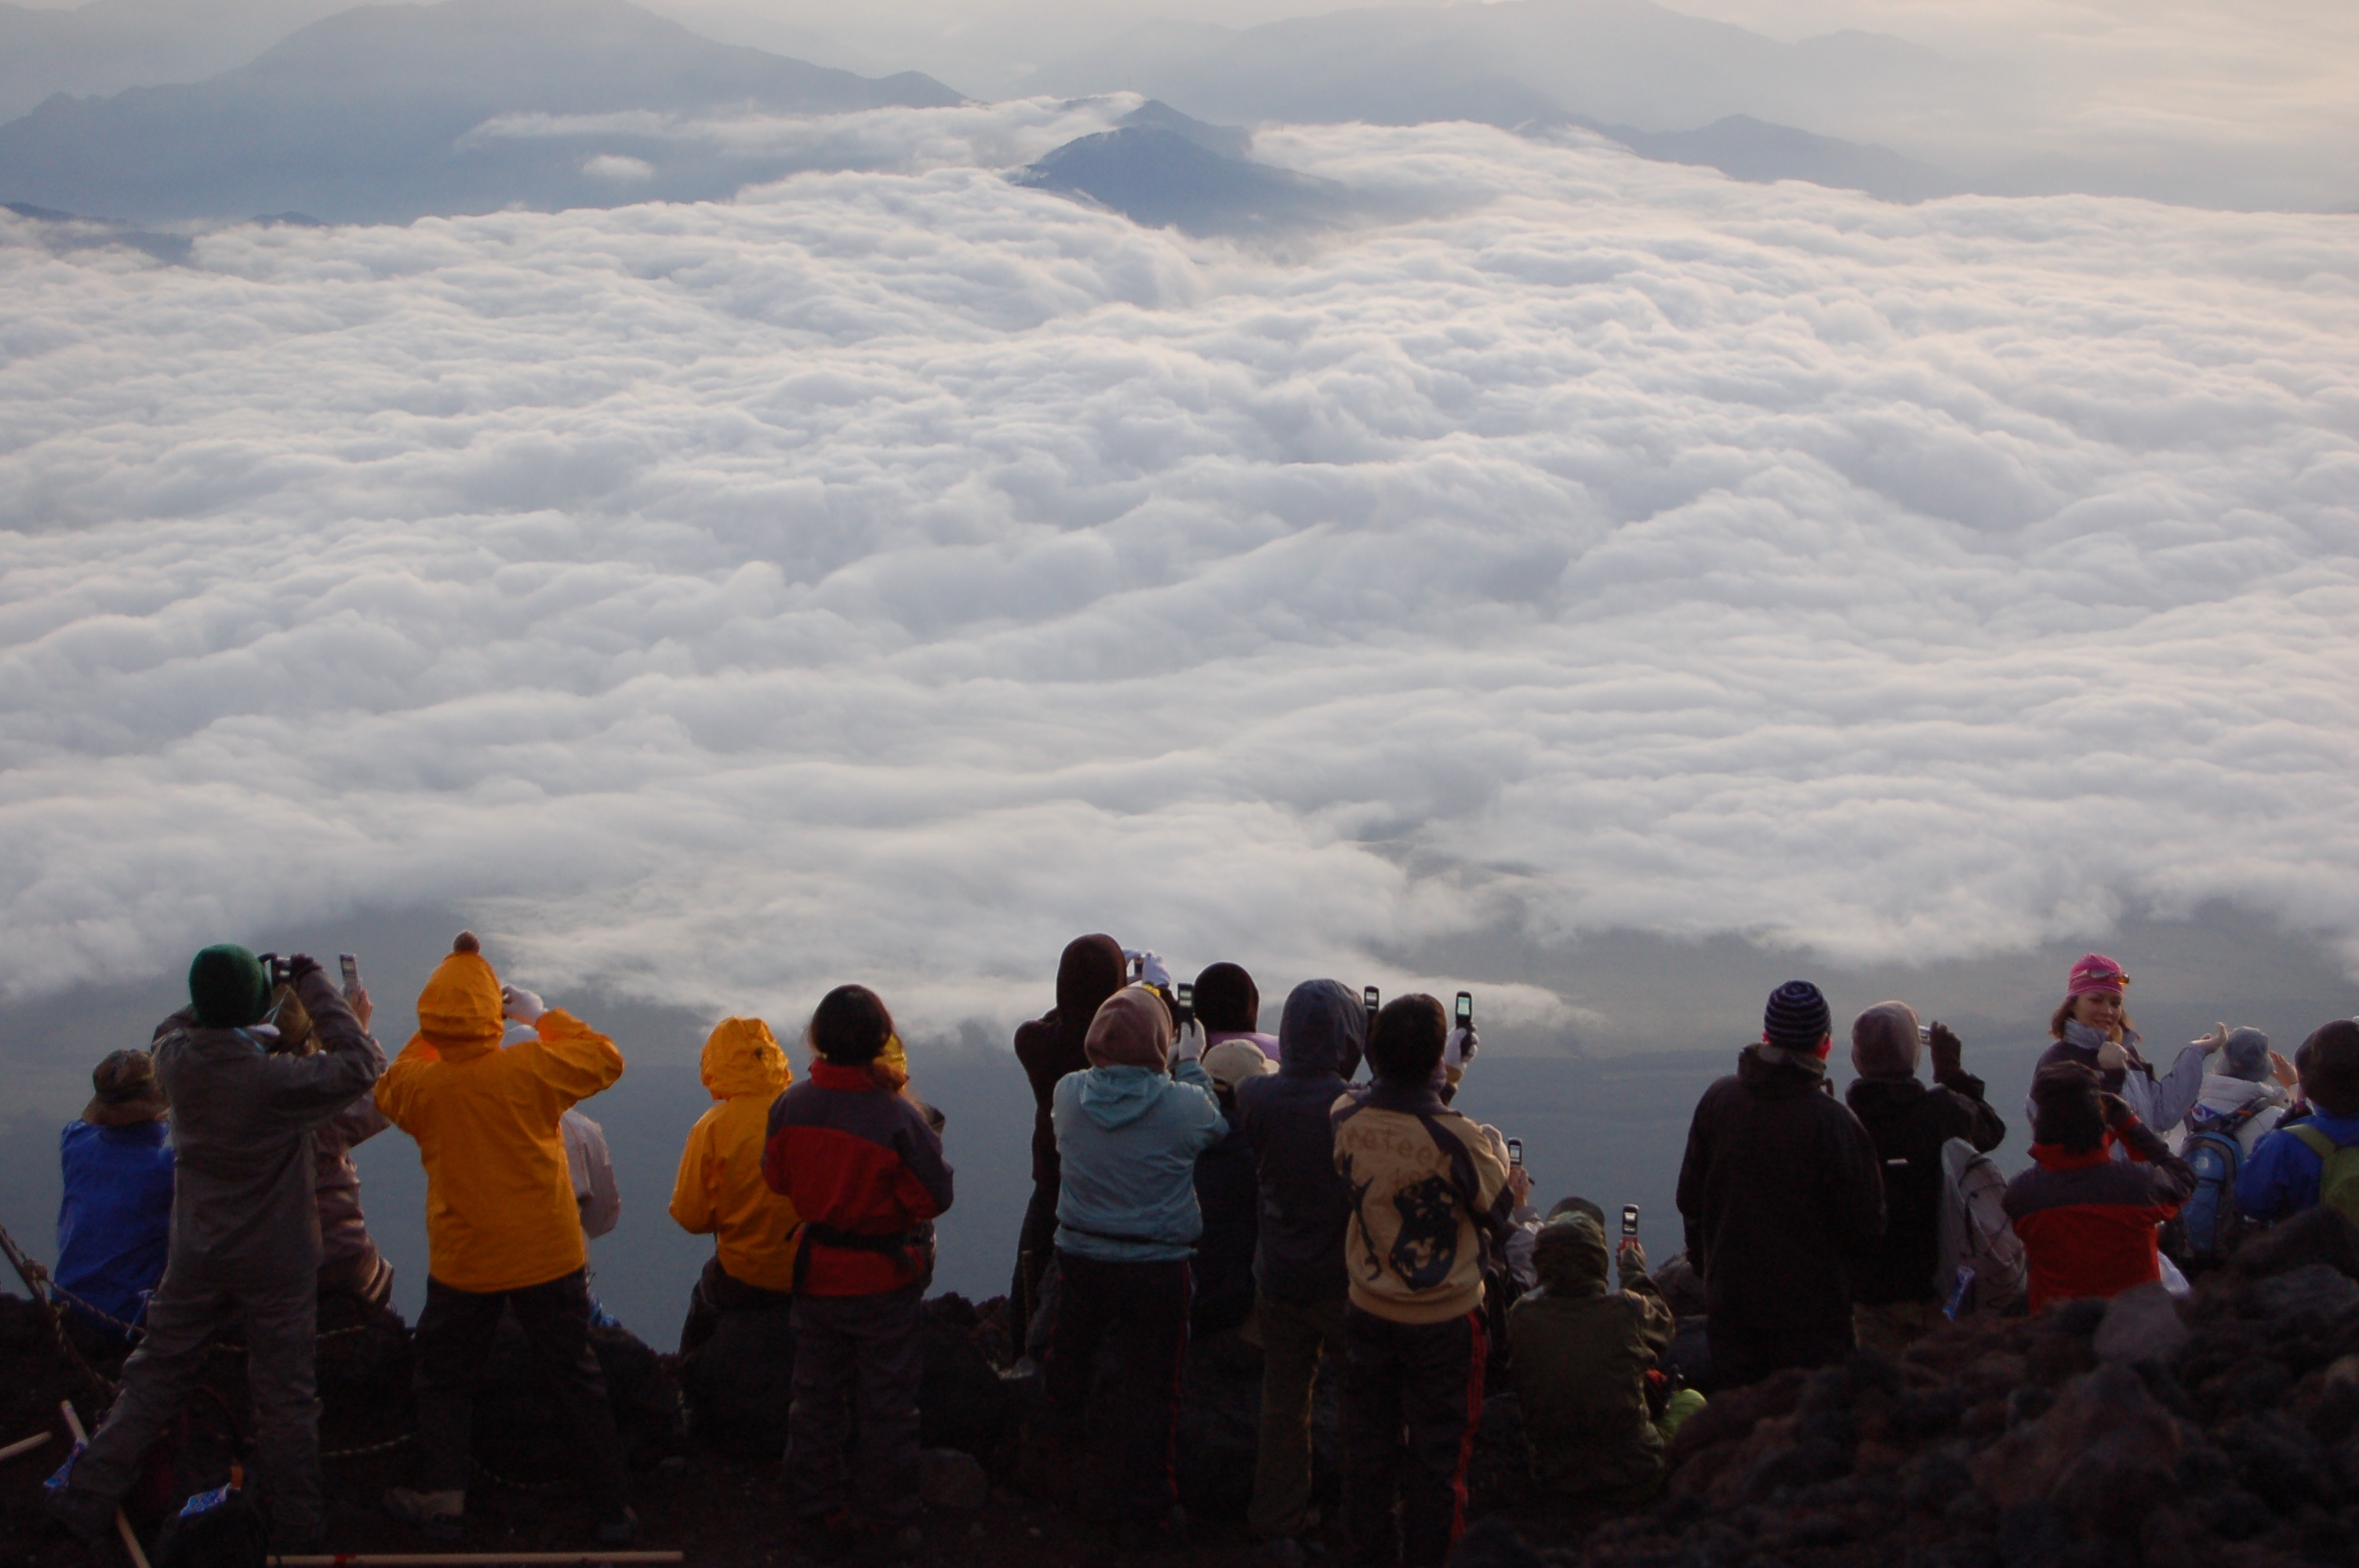 Climbing Mount Fuji (Flickr)